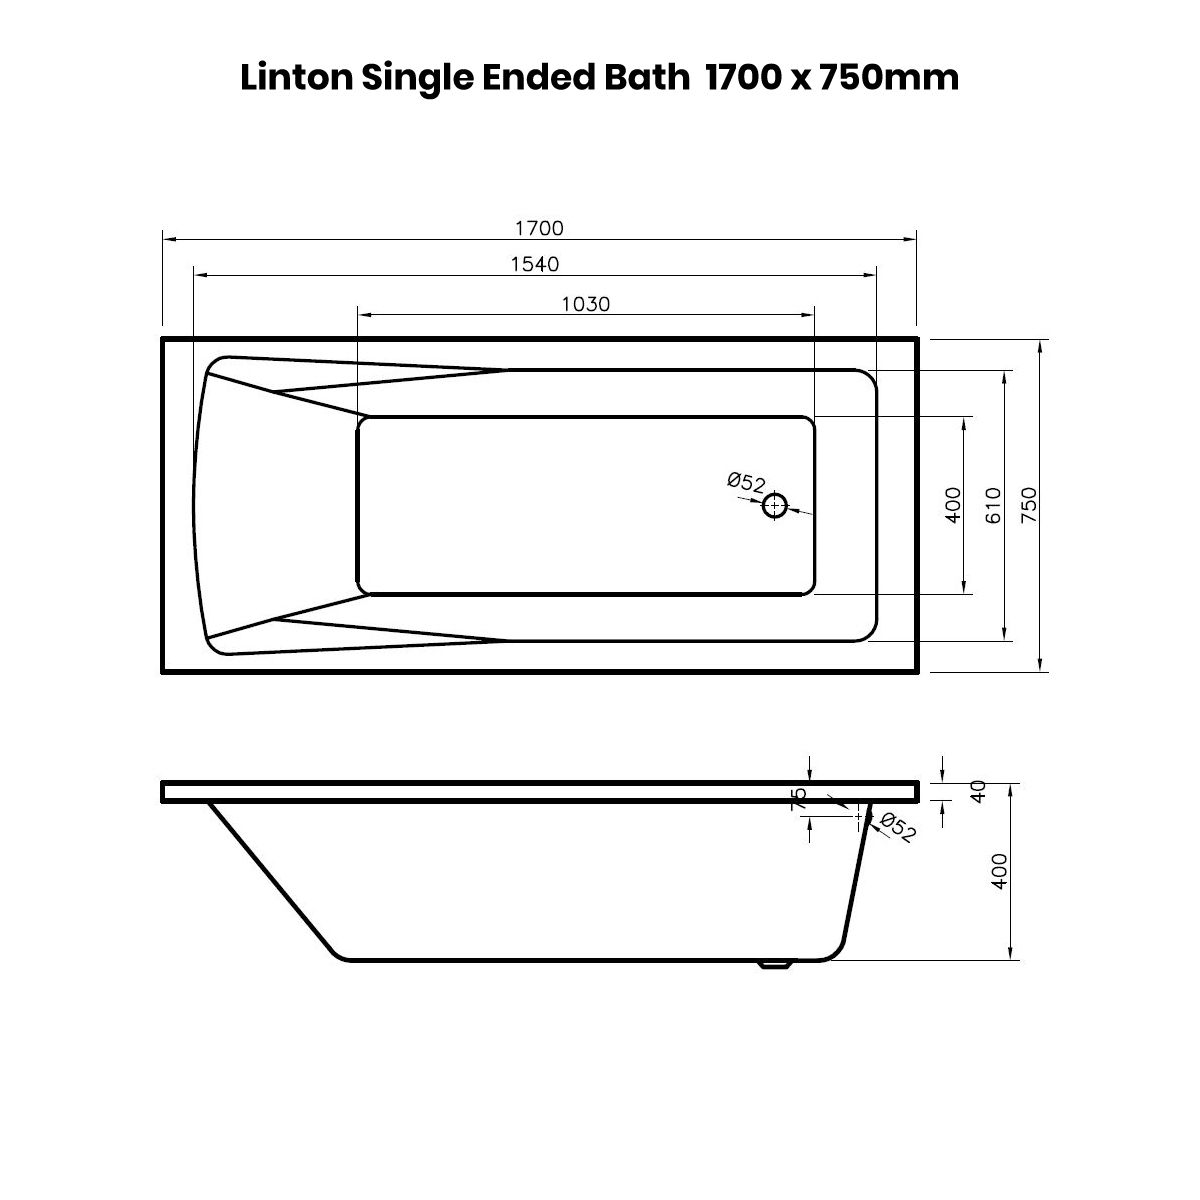 Nuie Linton Single Ended Bath 1700 x 750mm Dimensions